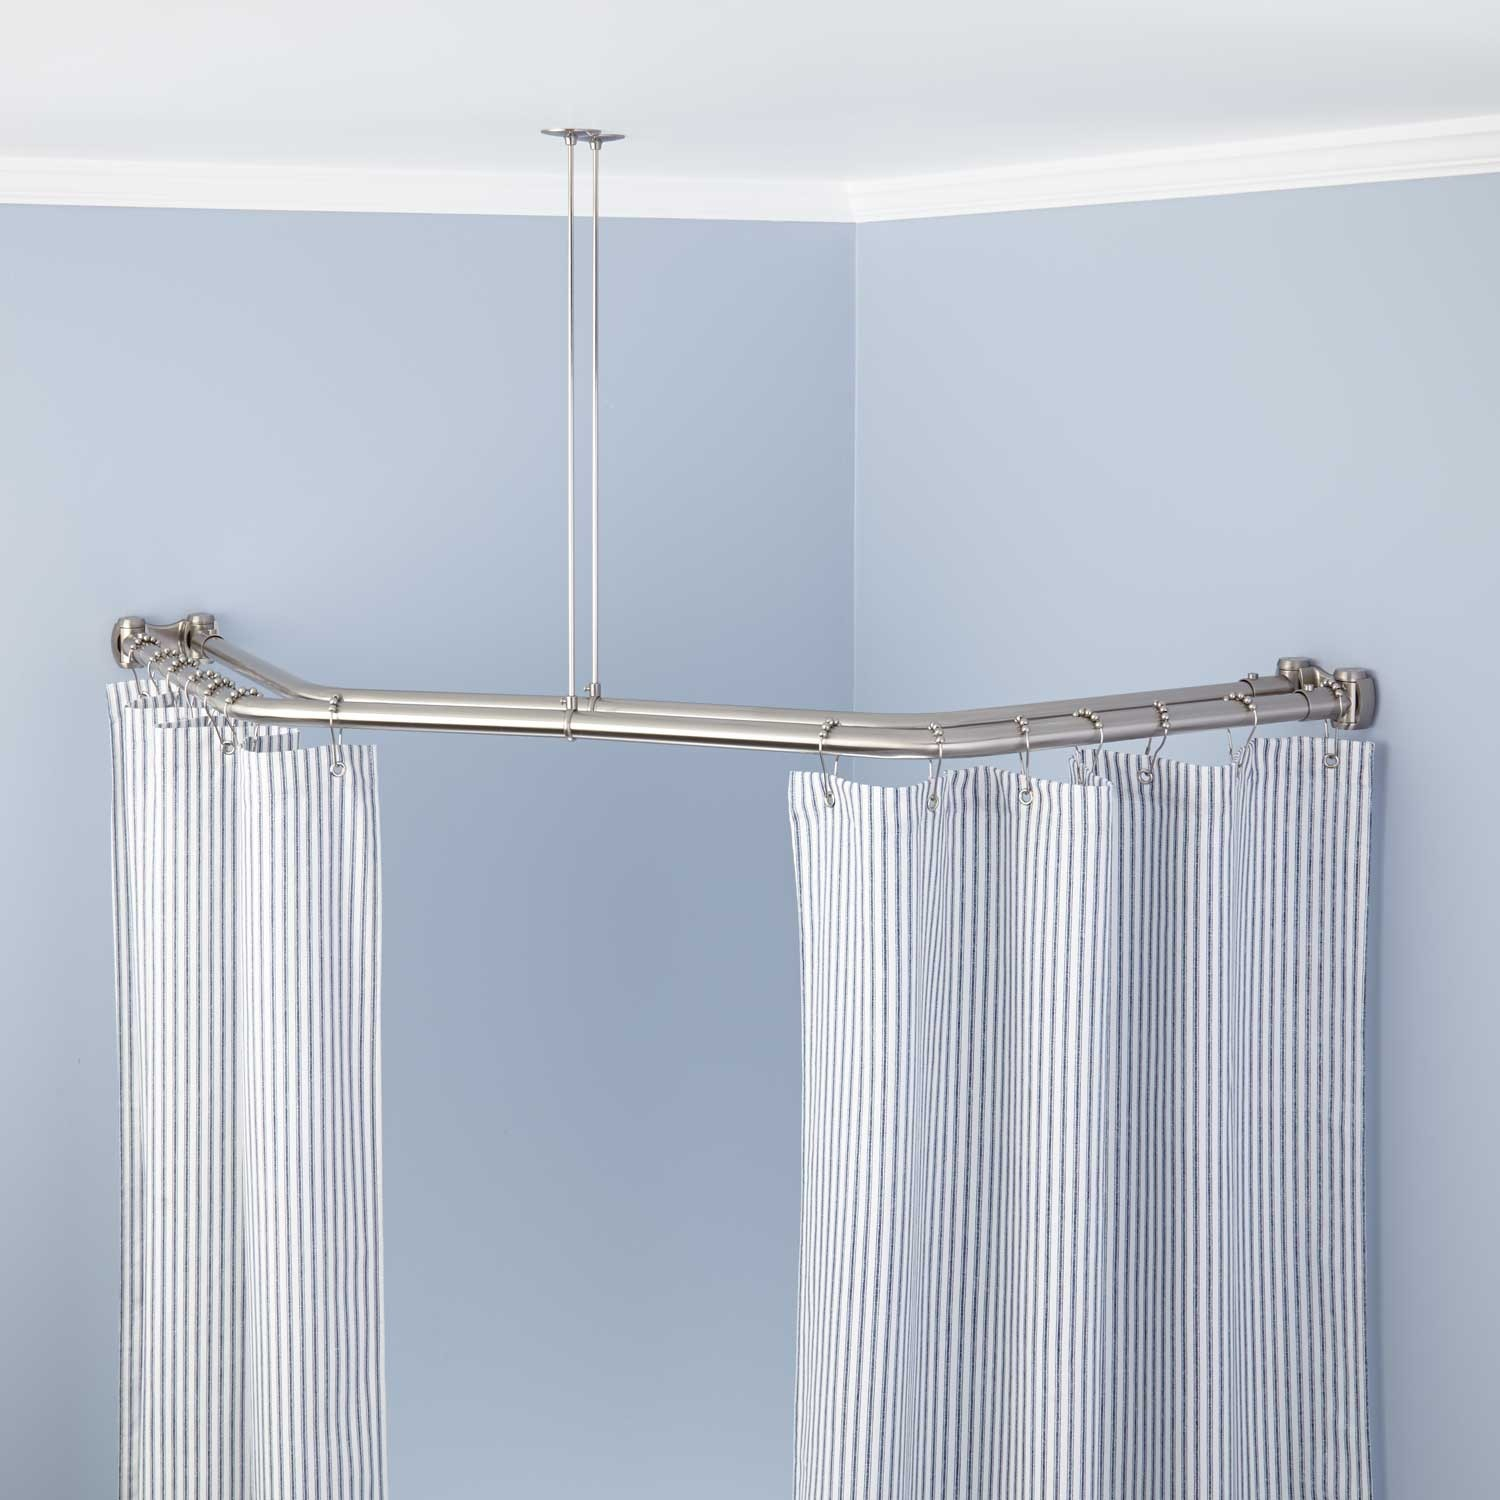 rod intended accessories corner liners rods hotel shower for curtain and